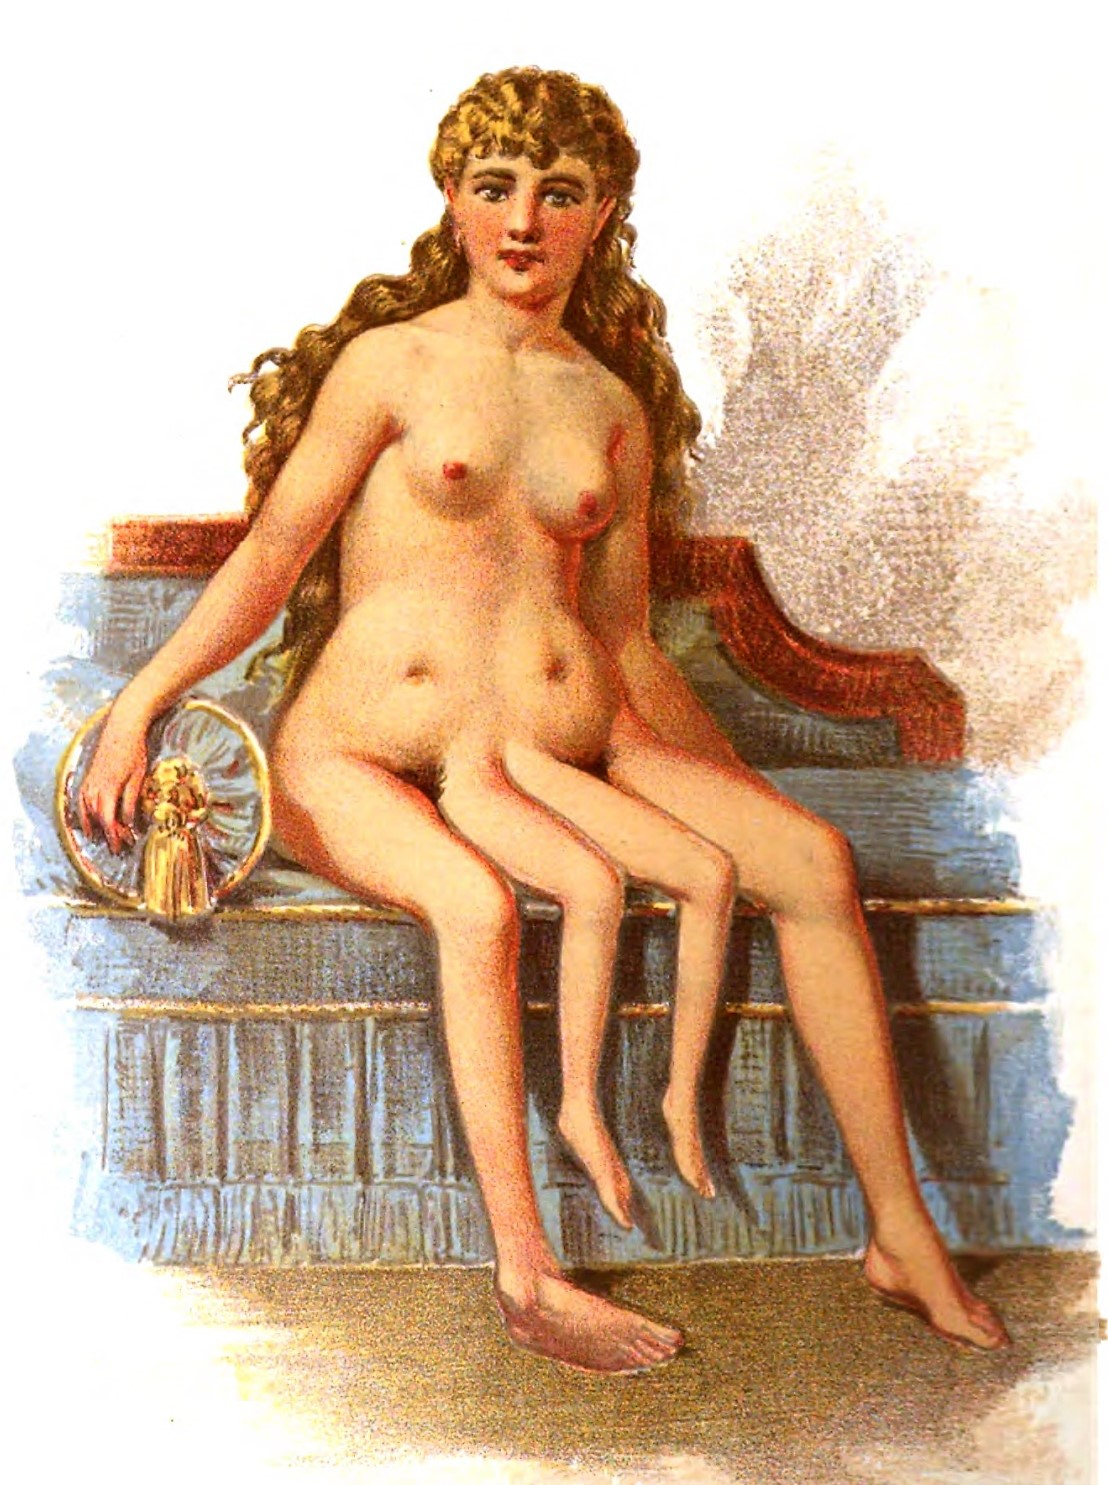 Myrtle as an adult, naked